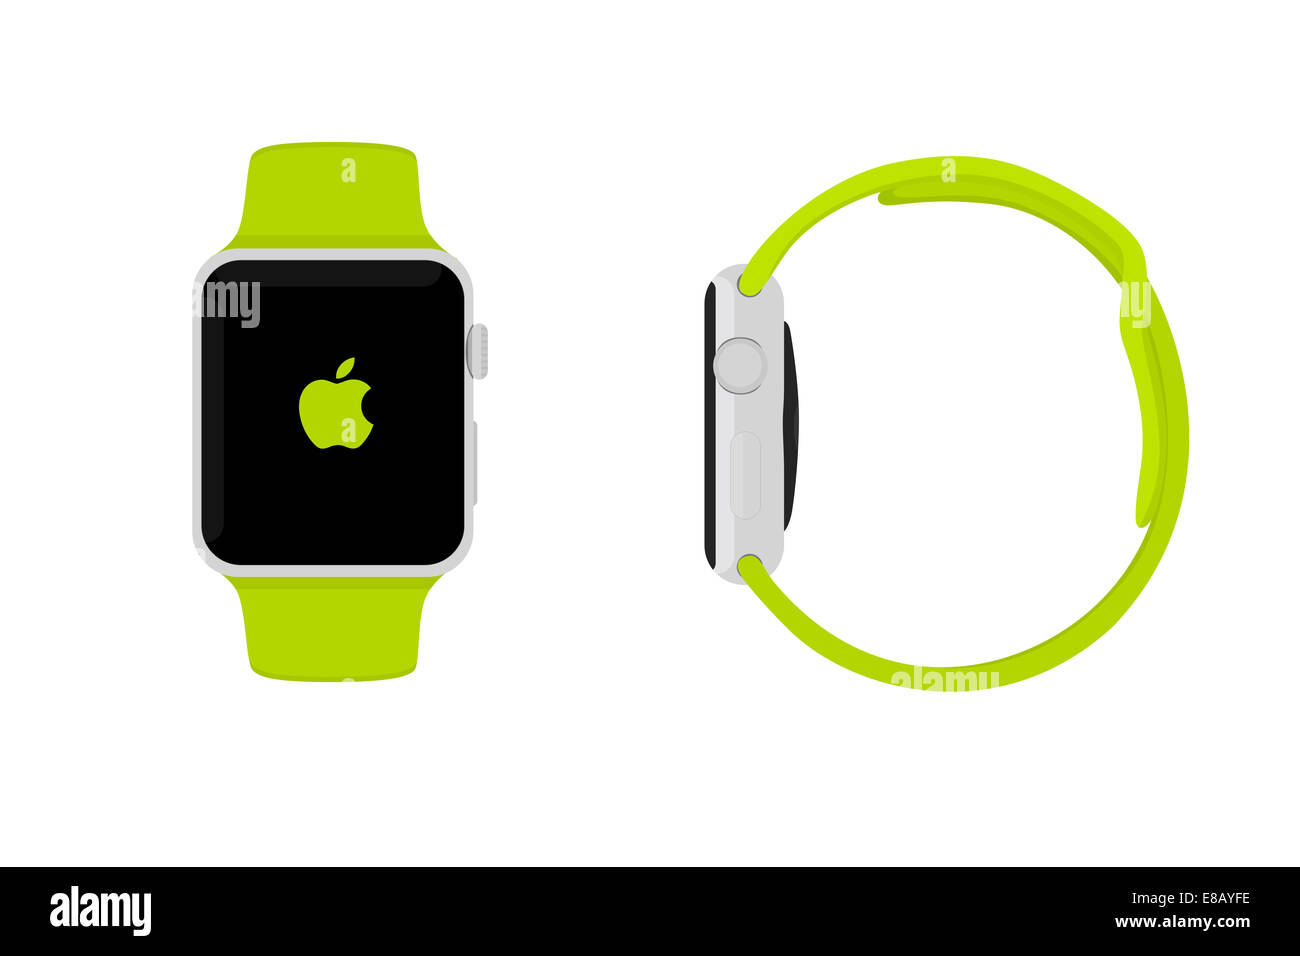 Illustration of Apple Watch sport, green. - Stock Image